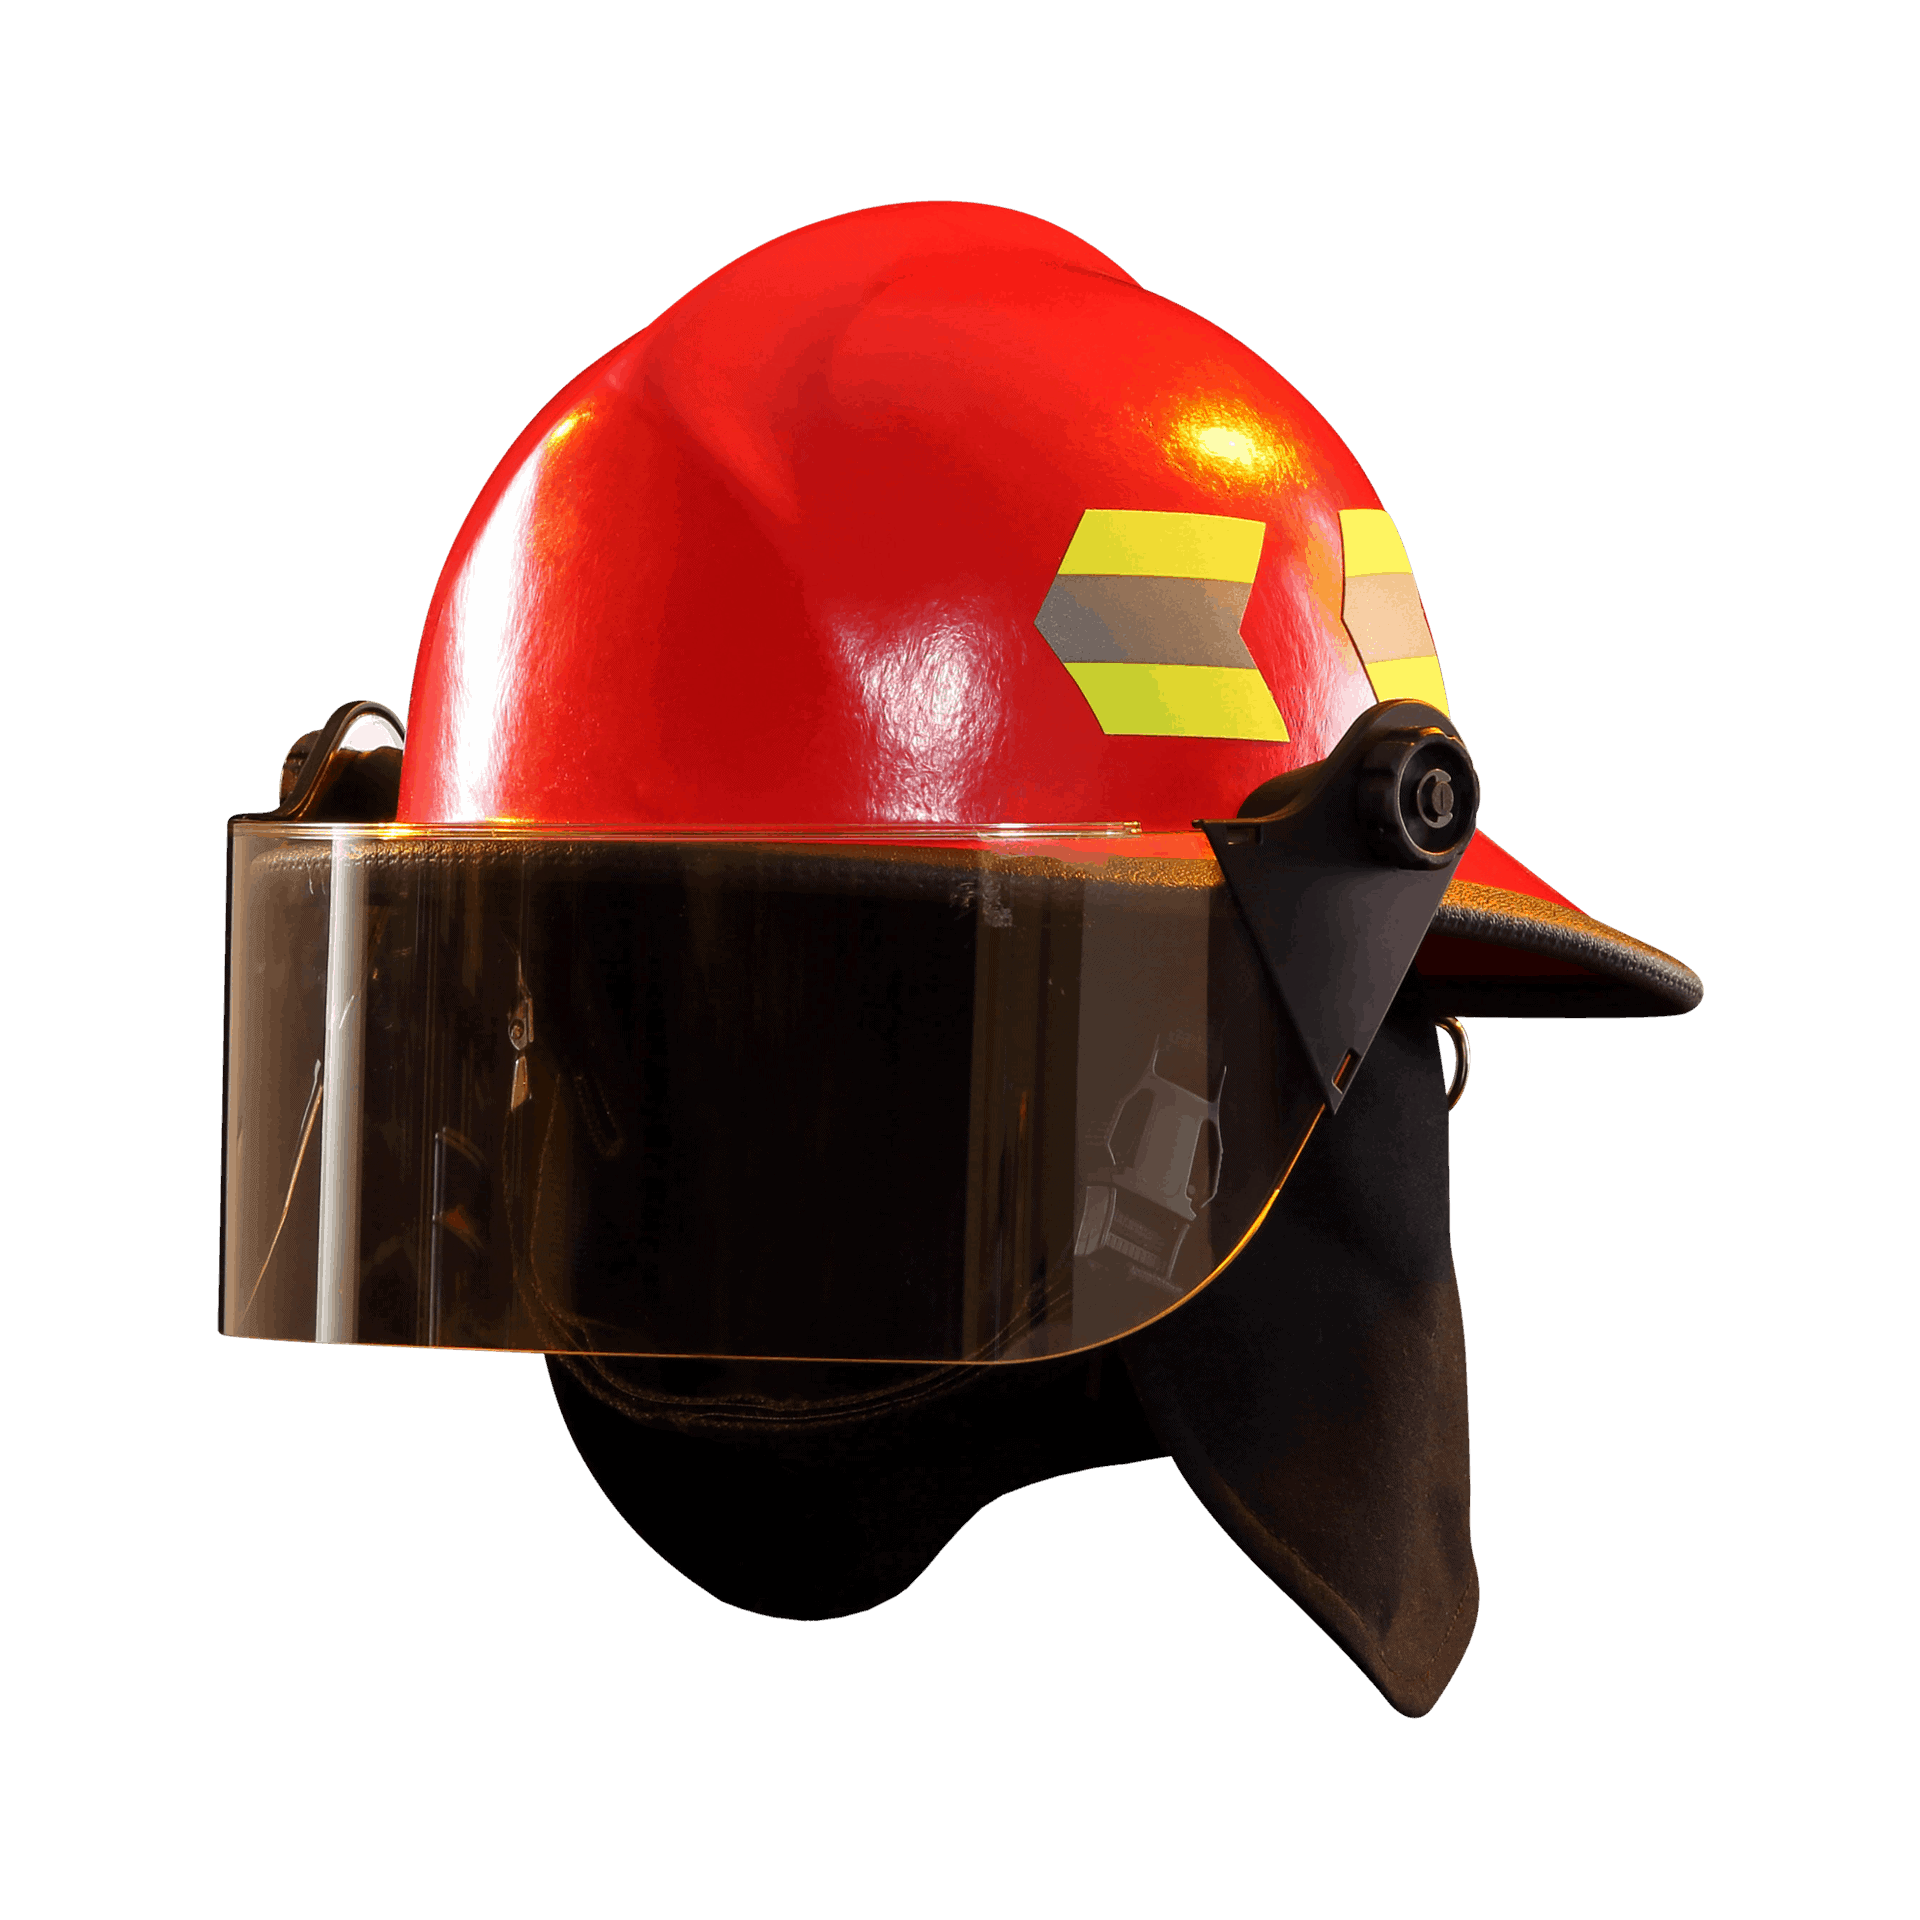 Fire-Dex Modern Helmet with visor